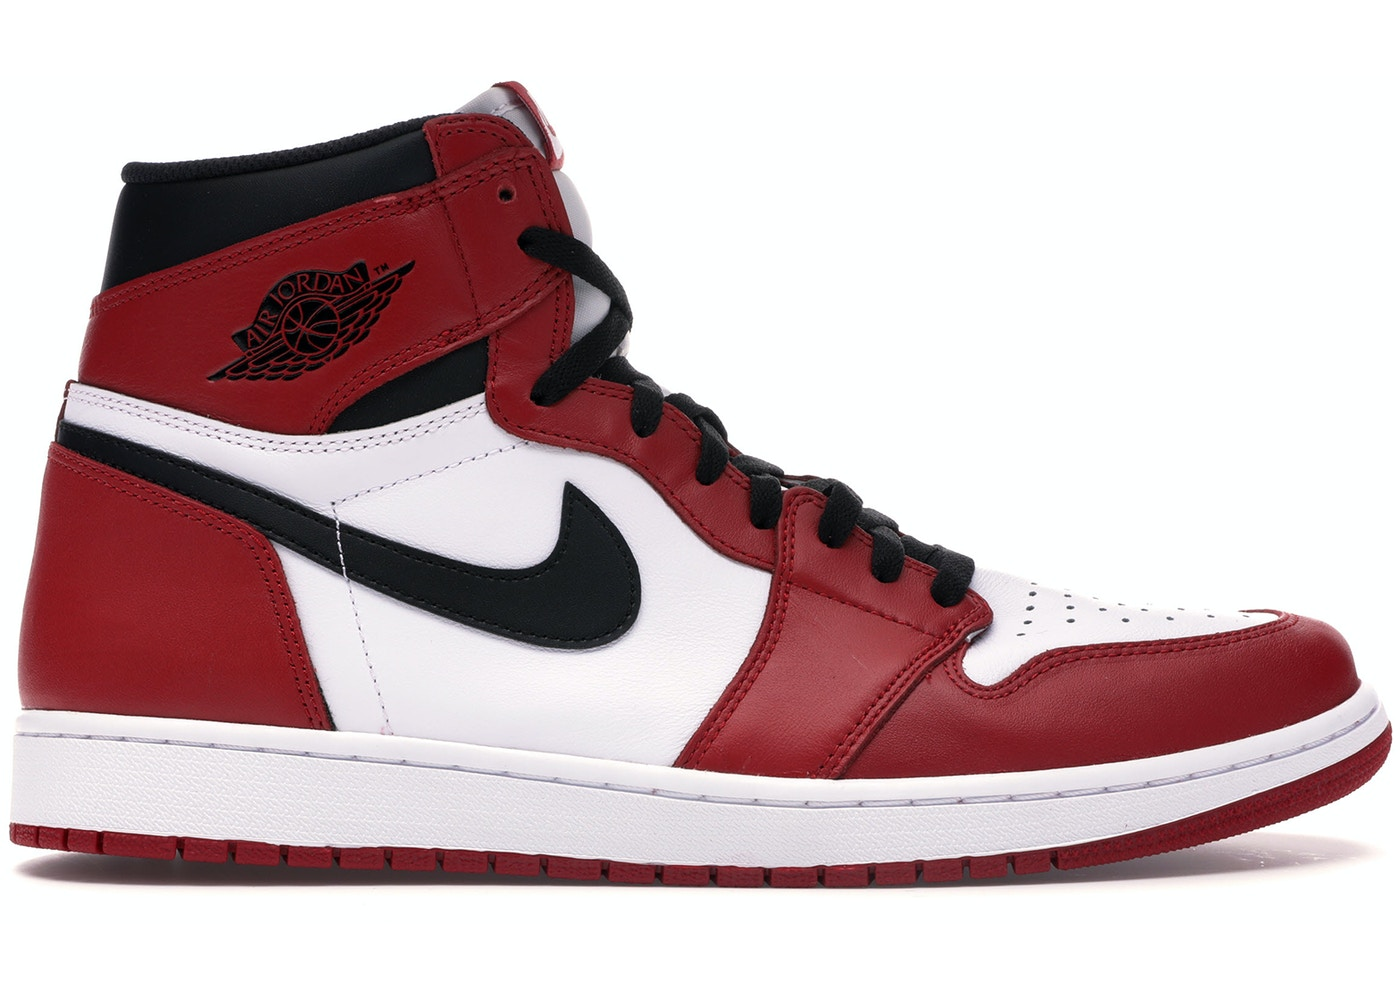 new style 5131f 05498 Jordan 1 Retro Chicago (2015) - 555088-101